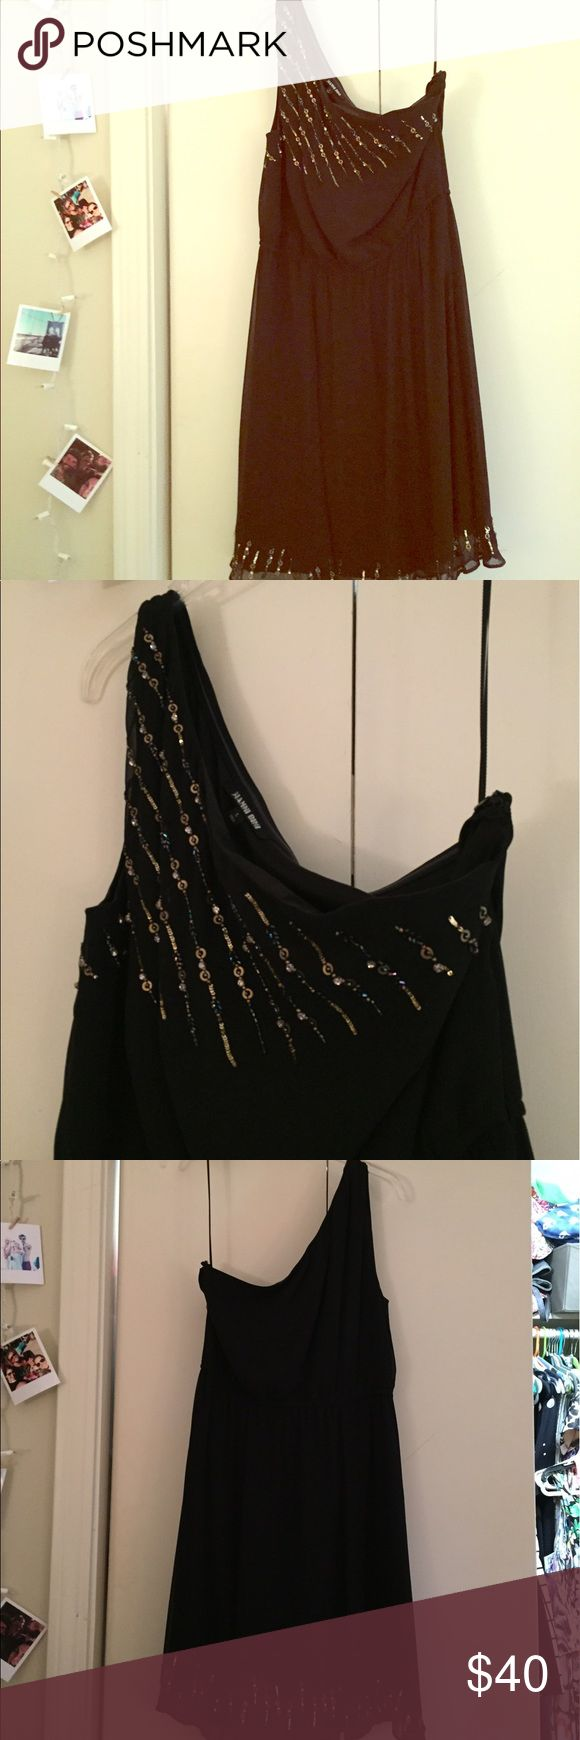 Black One Shoulder Dress Black one shoulder, sinched at waist. Beading detail at top and bottom. Thick lining with a little stretch to it. Very pretty!! Gianni Bini Dresses One Shoulder